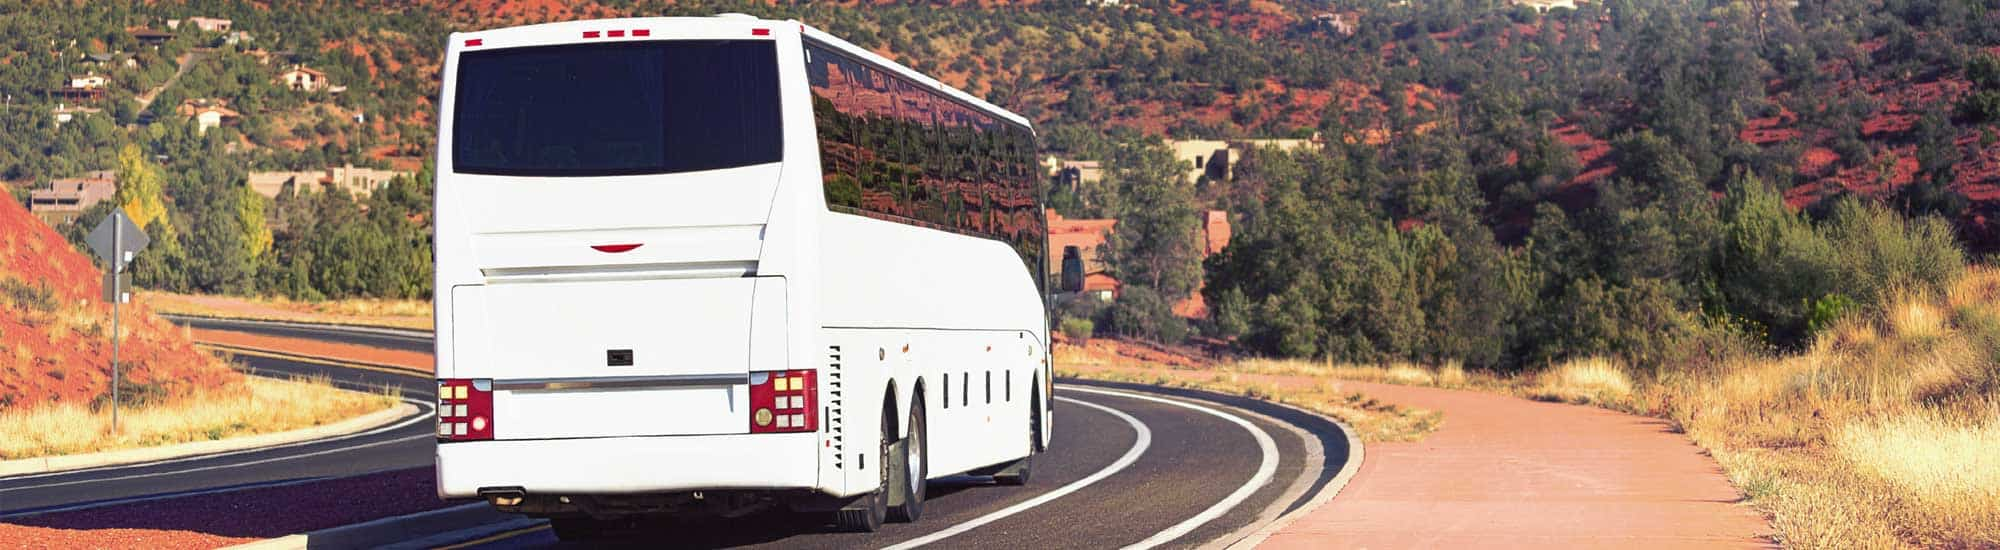 tmc_header_usa_bus.jpg